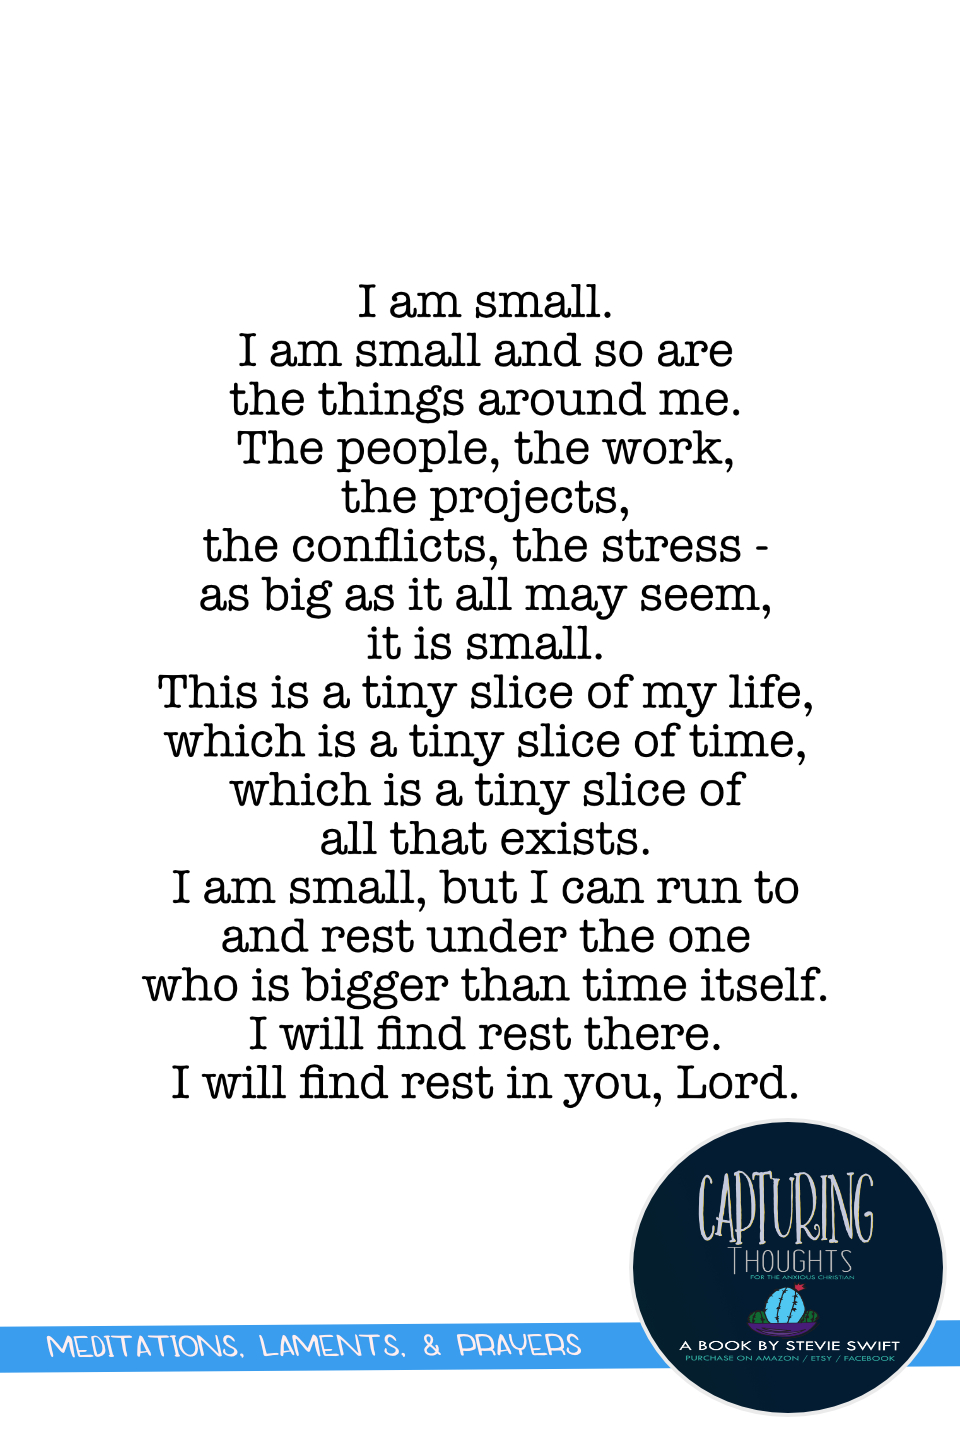 I am small and so are the things around me but i can run to and rest under the one who is bigger than time itself. i will find rest in you lord.